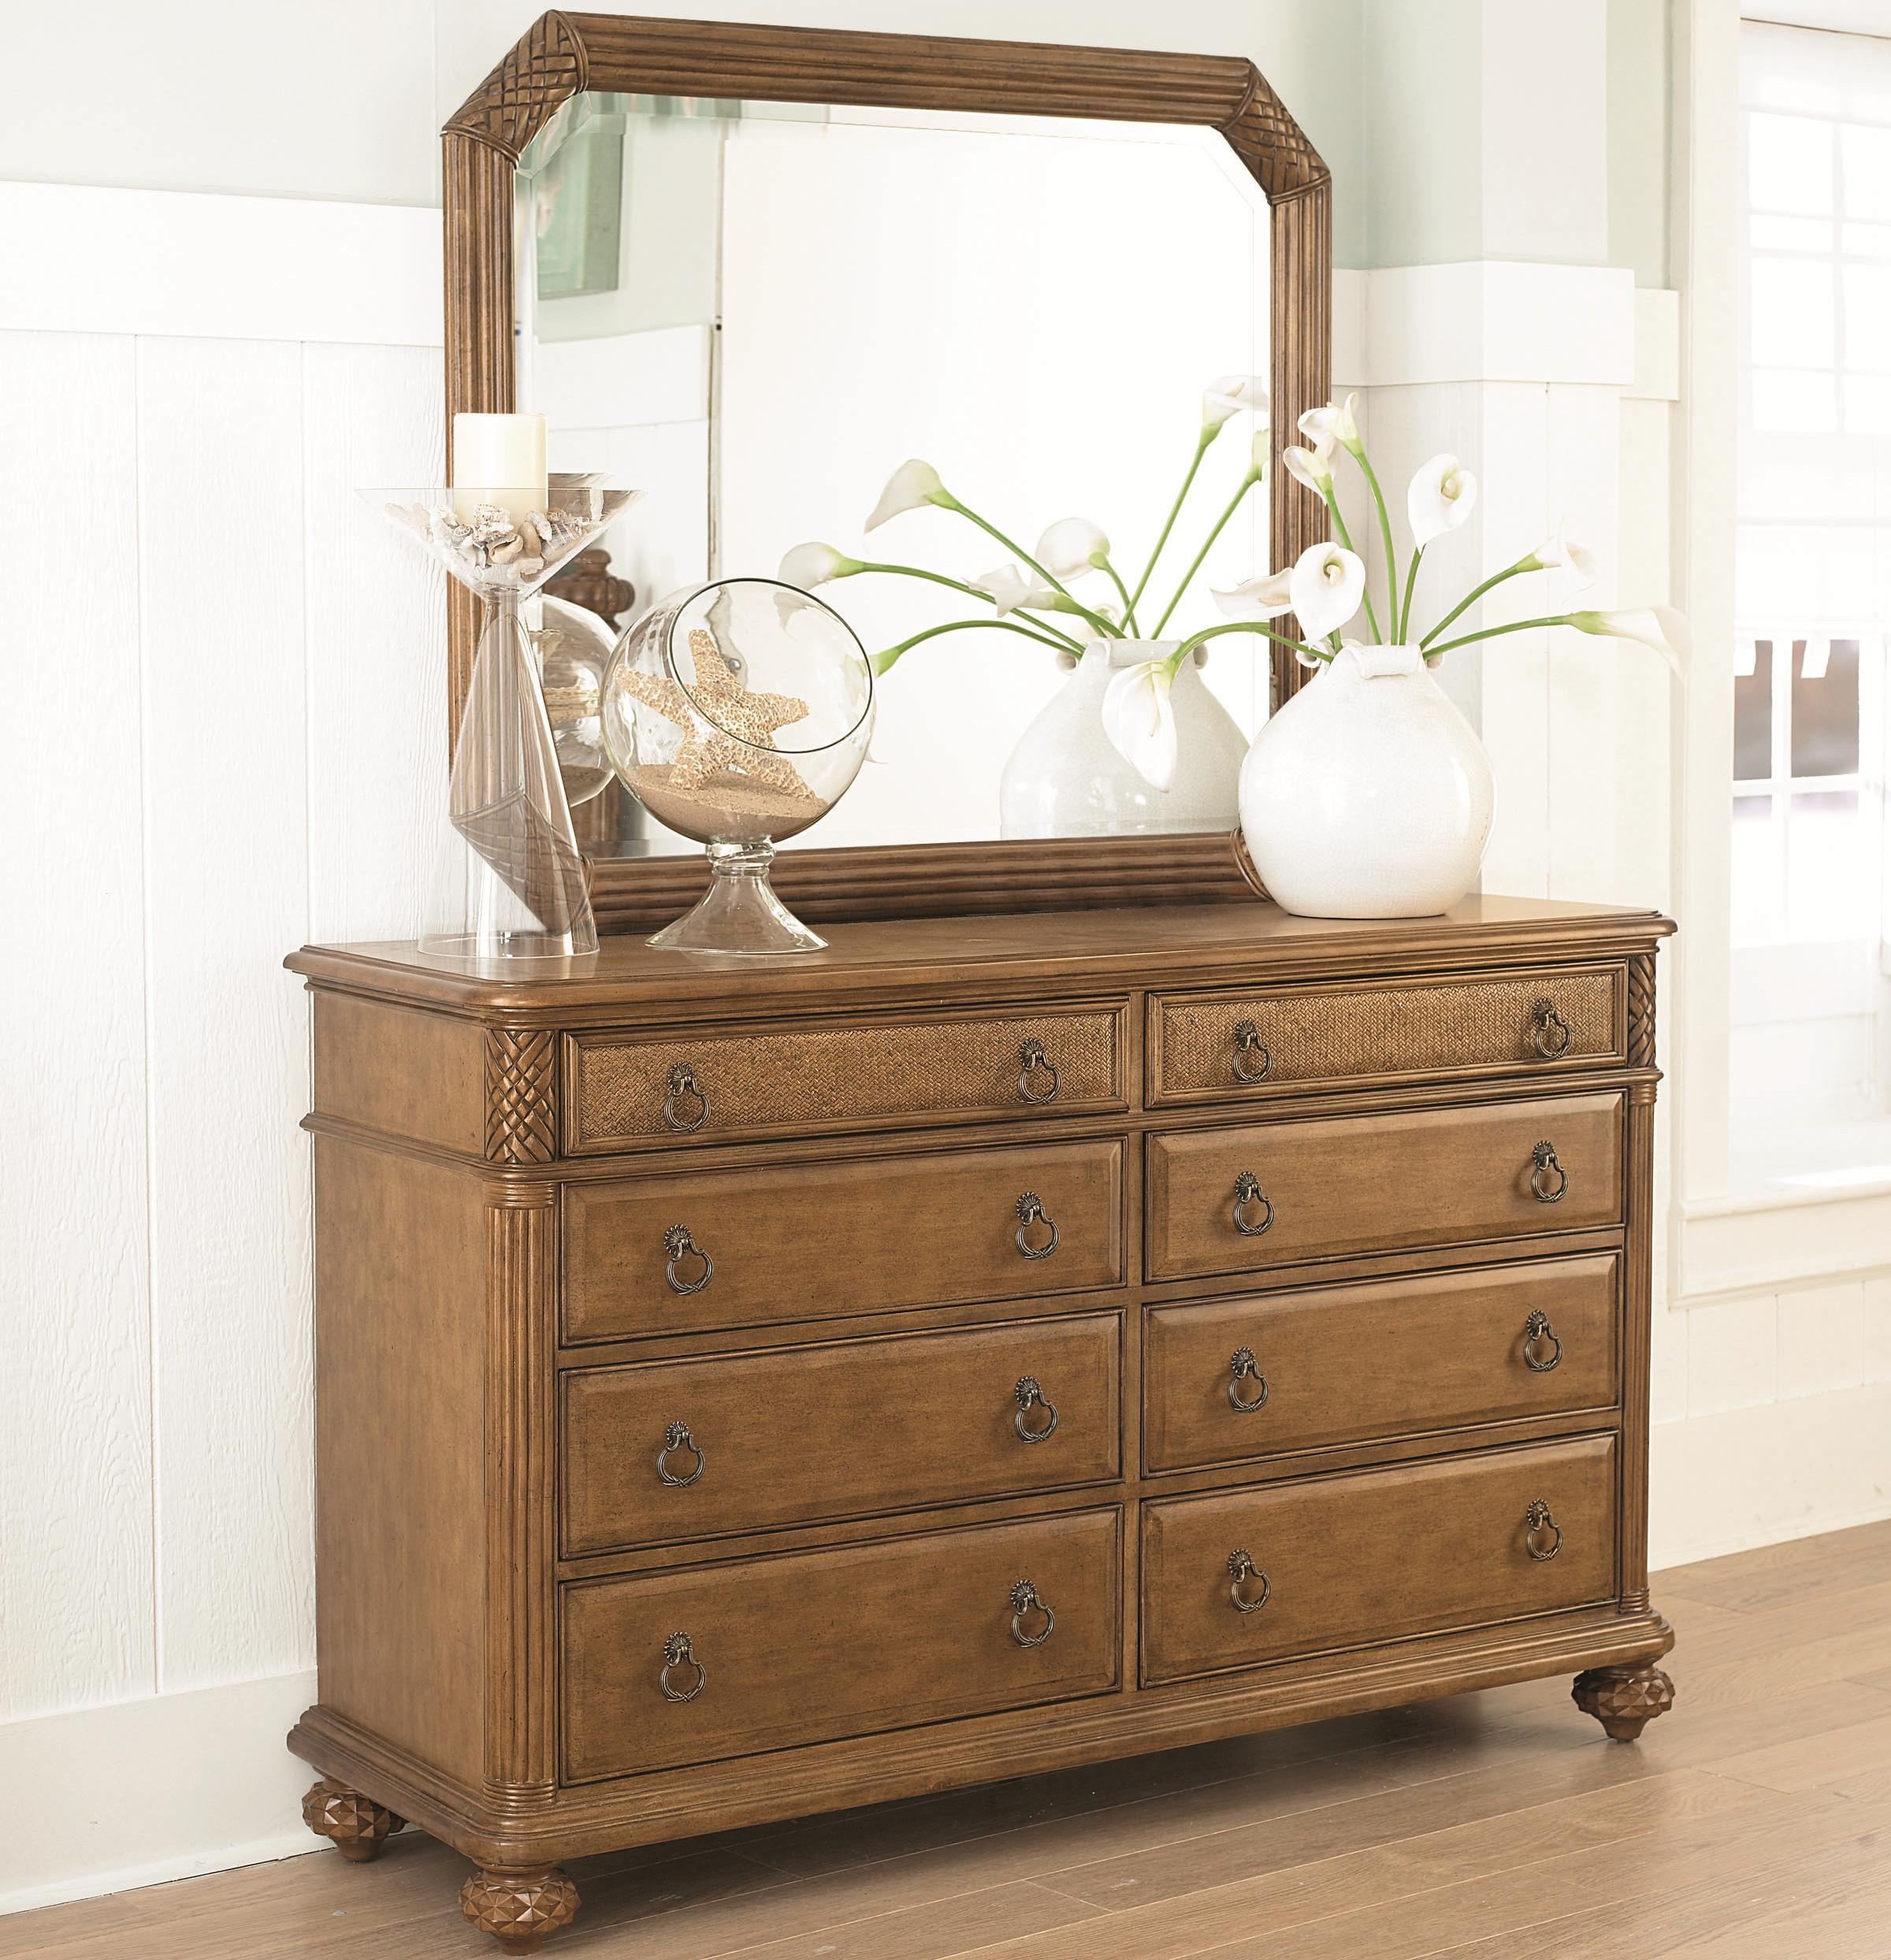 American Drew Grand Isle Dresser & Mirror - Item Number: 079-220+050